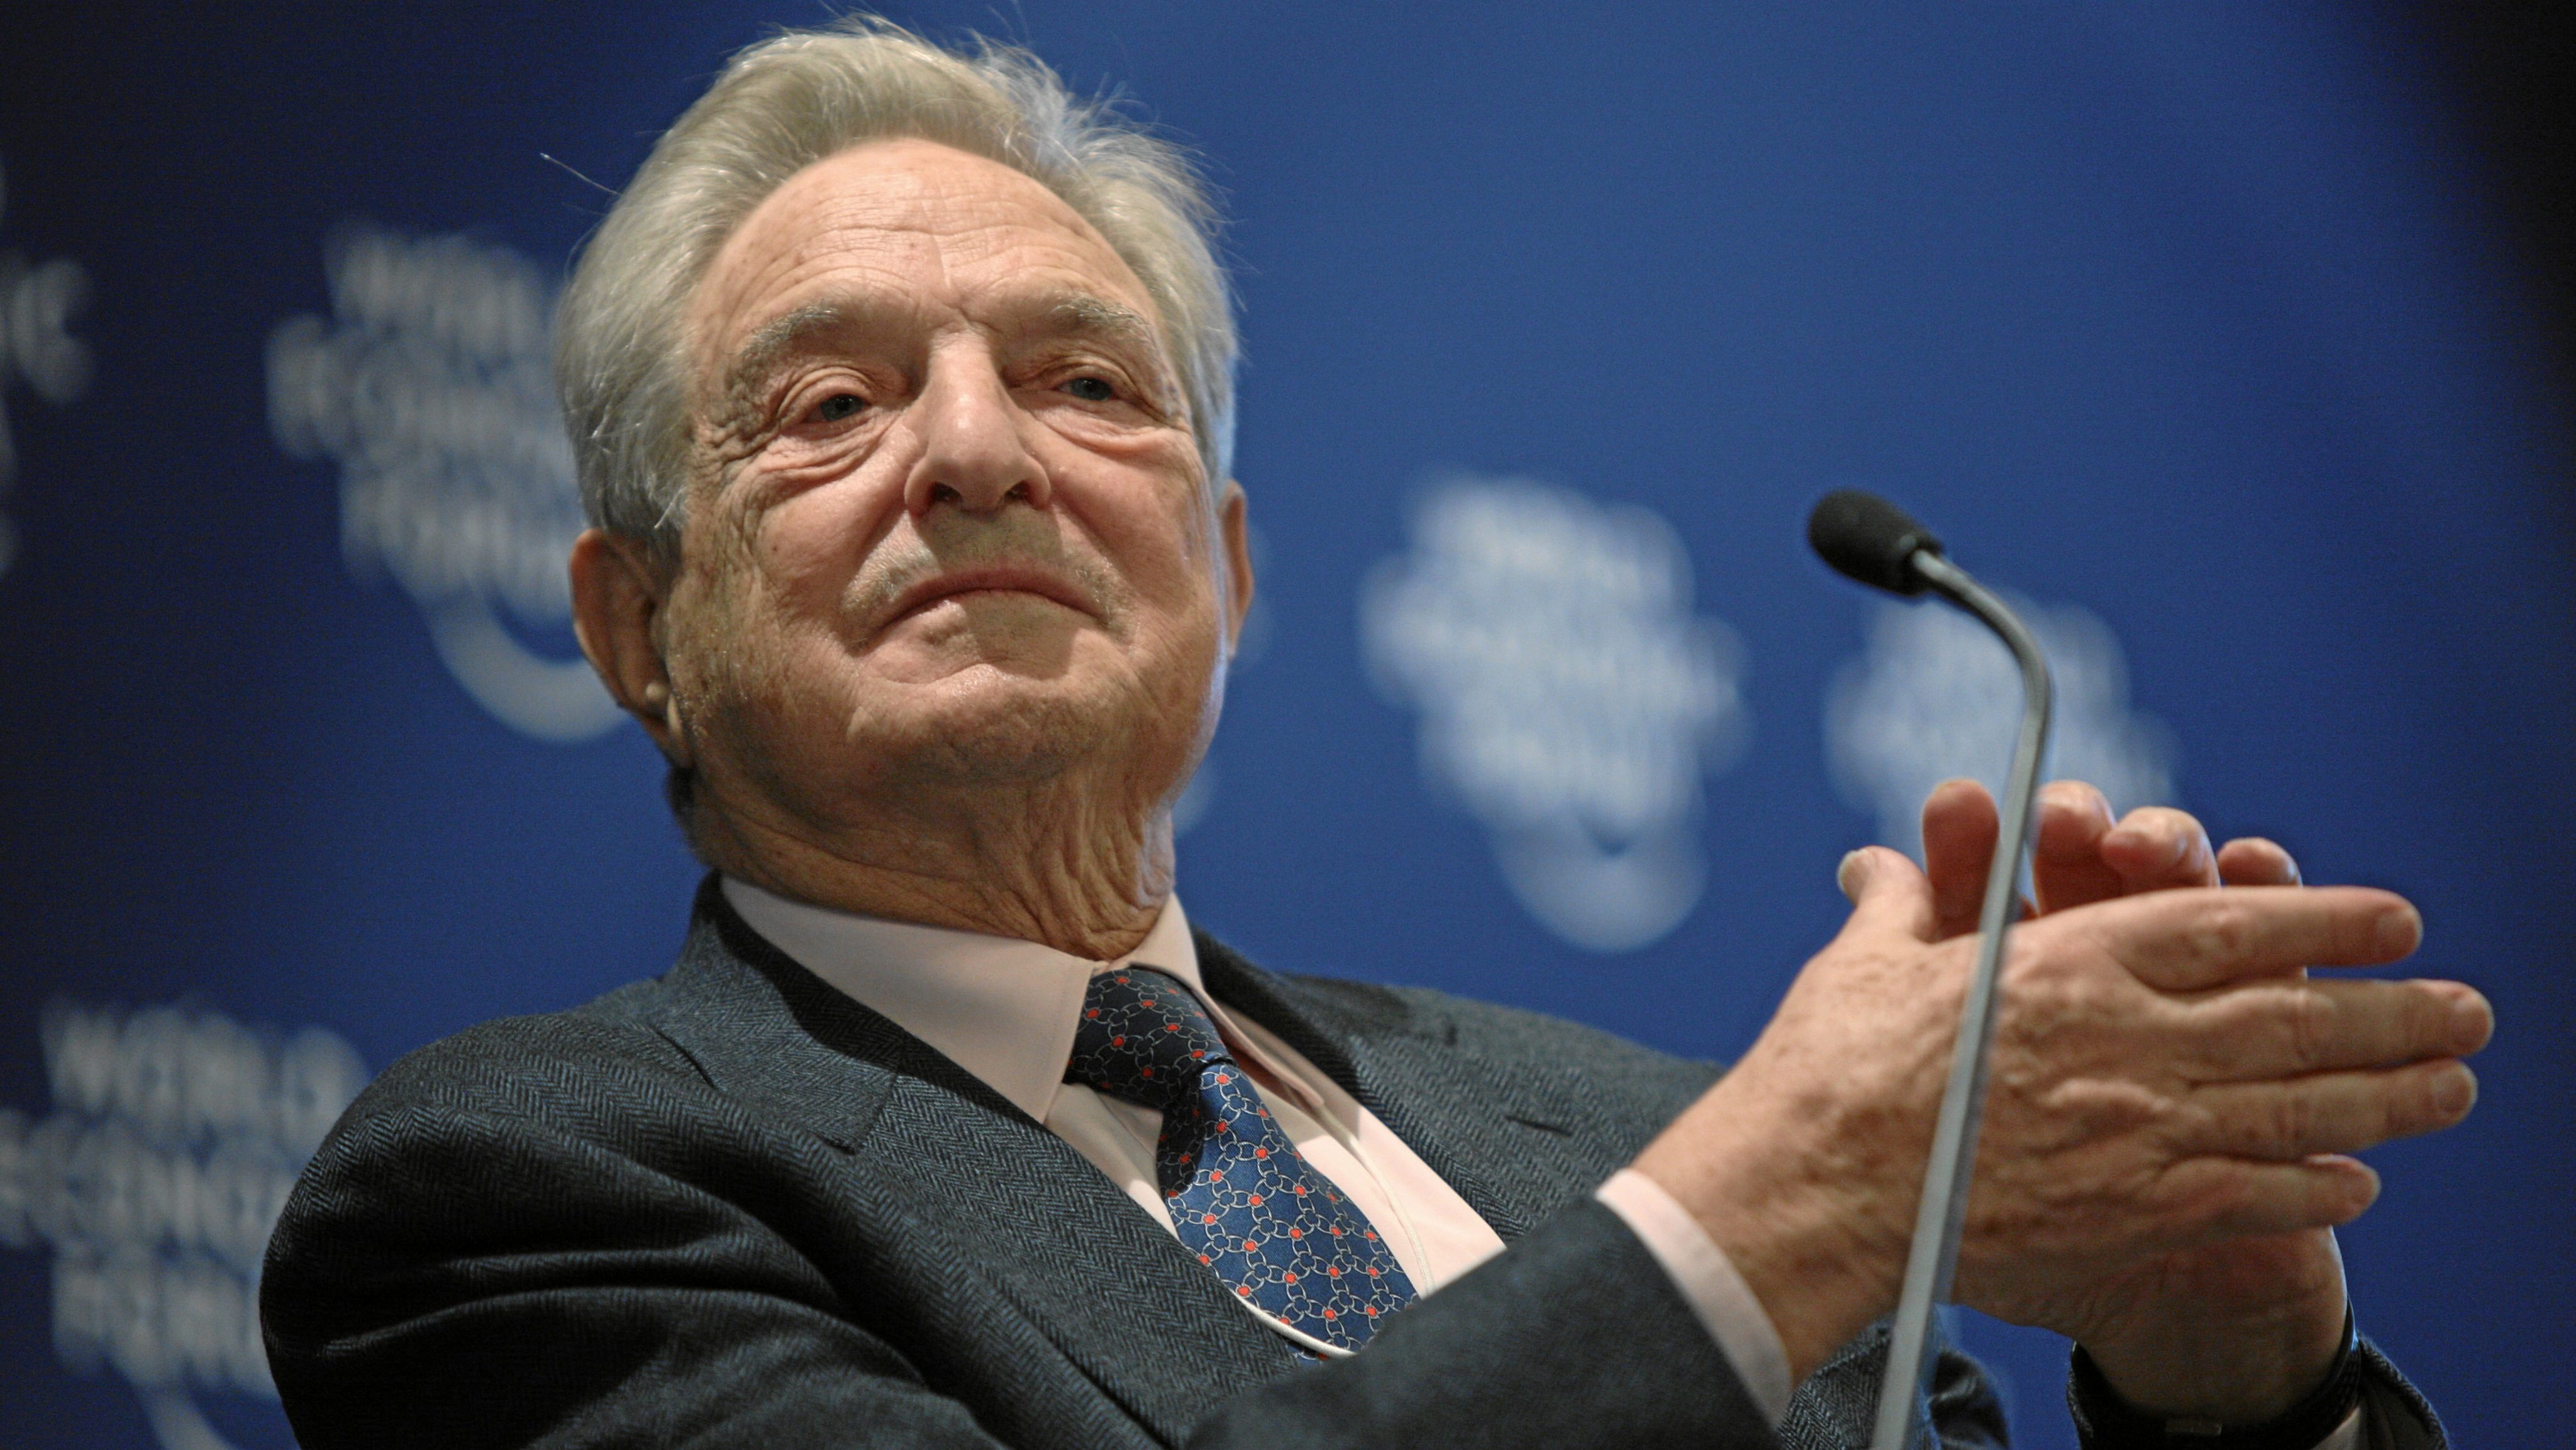 DAVOS/SWITZERLAND, 27JAN10 - George Soros, Chairman, Soros Fund Management, USA, captured during the session 'Rebuilding Economics' of the Annual Meeting 2010 of the World Economic Forum in Davos, Switzerland, January 27, 2010 at the Congress Centre.  Copyright by World Economic Forum swiss-image.ch/Photo by Sebastian Derungs